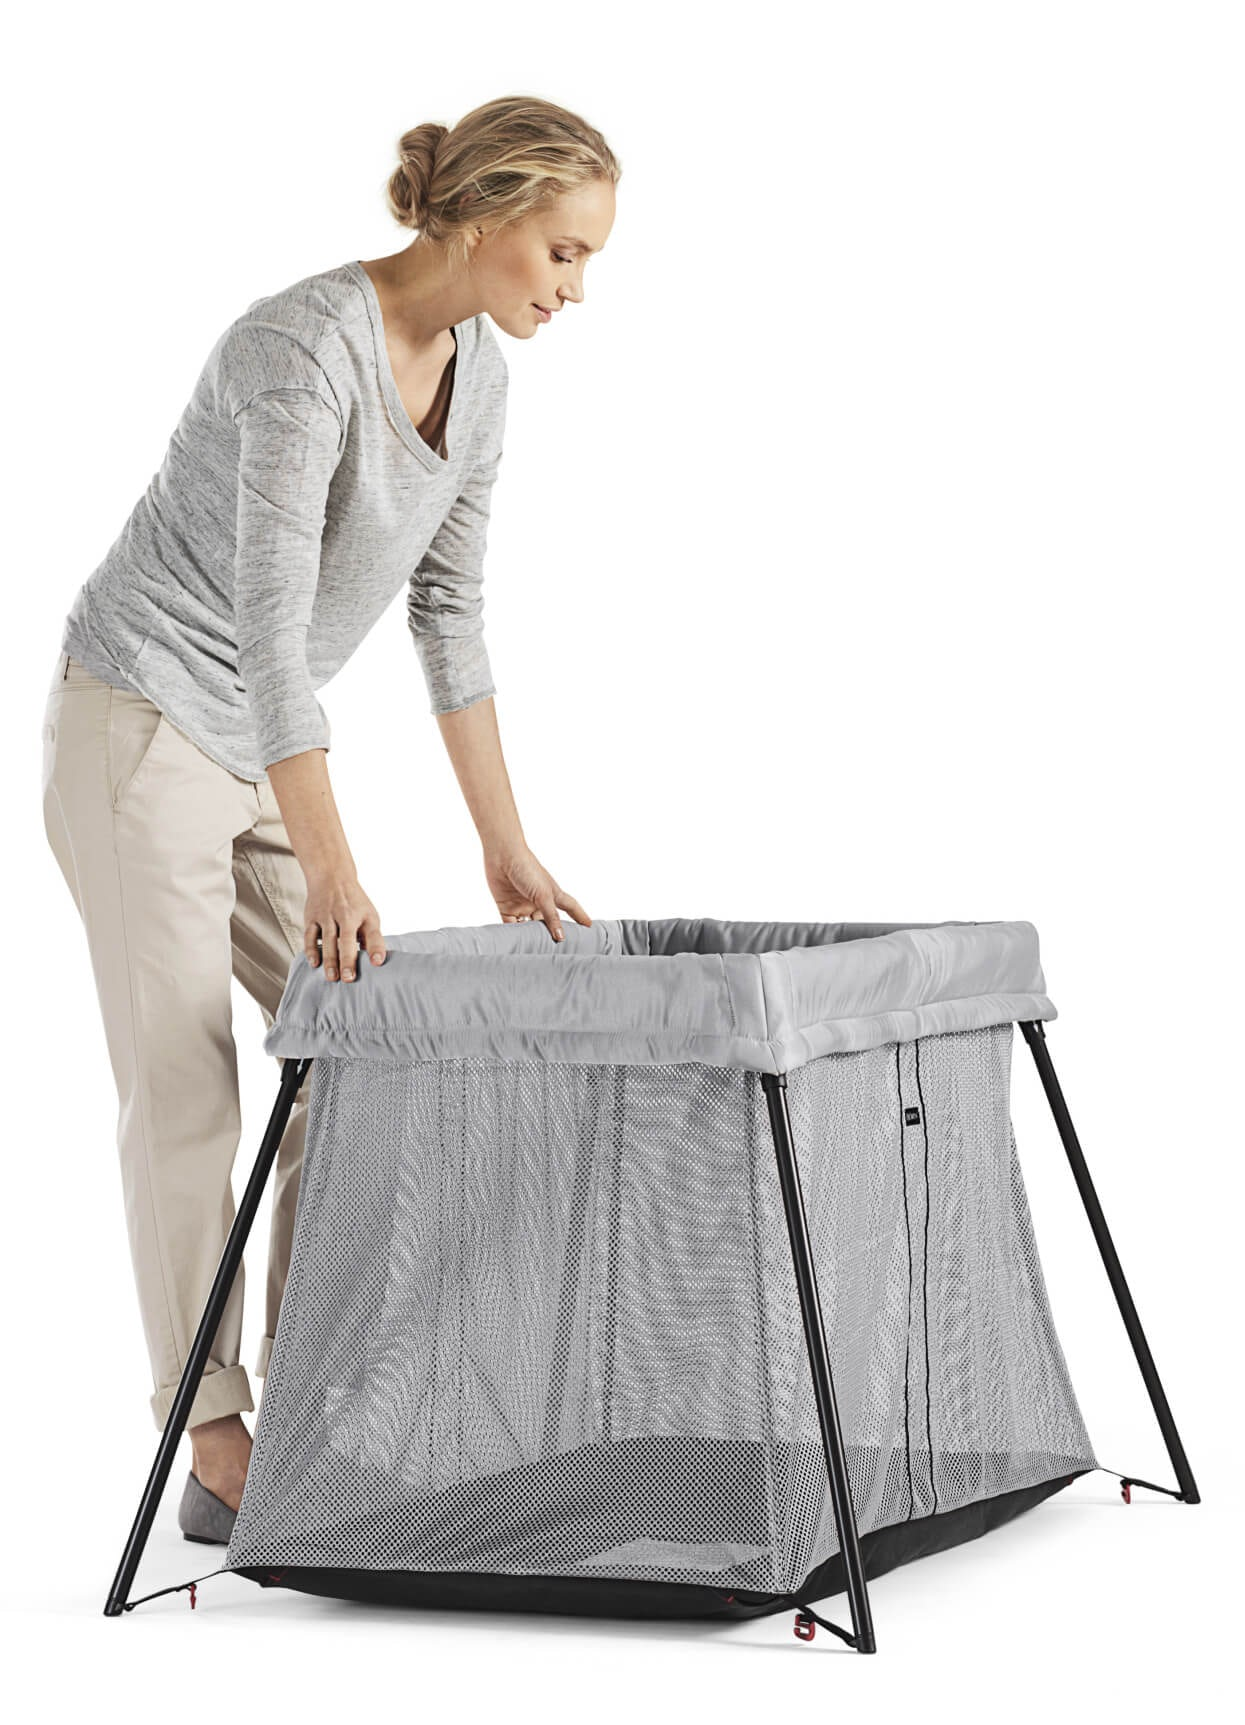 Easy-to-store-carry-and-stow-in-any-baggage-space-Travel-Crib-Light-BabyBjorn